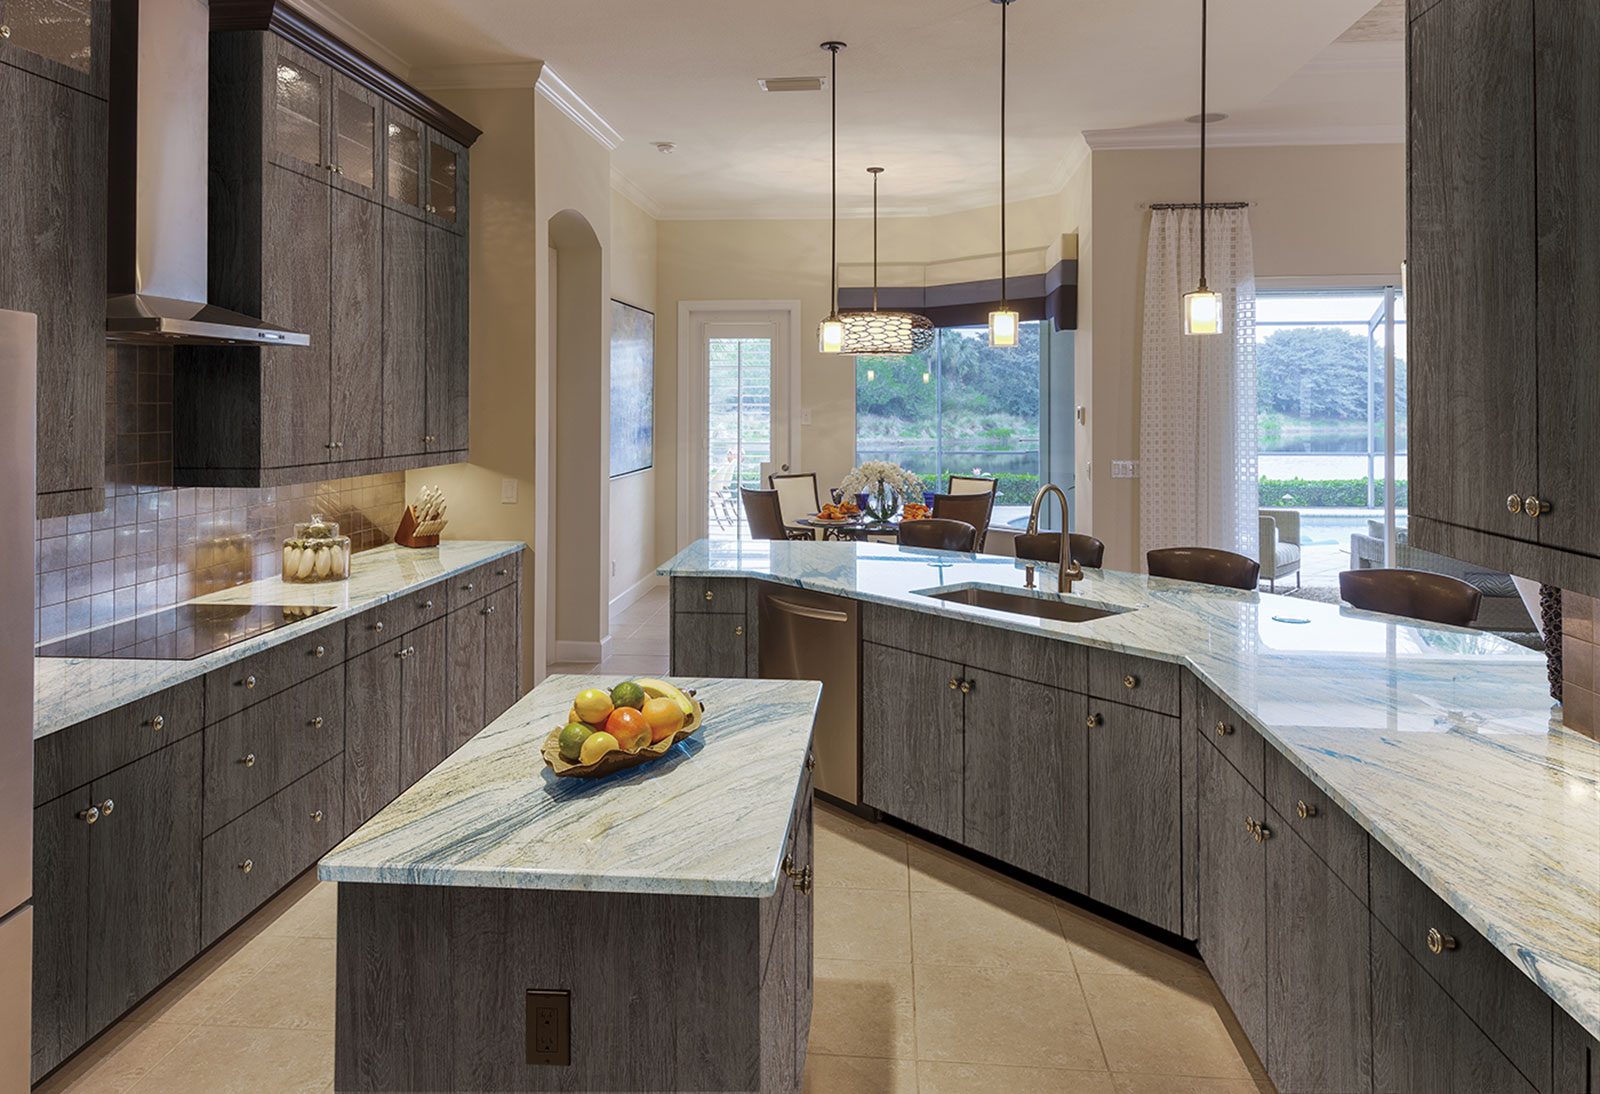 How To Drive Manual >> Aged Stone Kitchen - Sonae Arauco